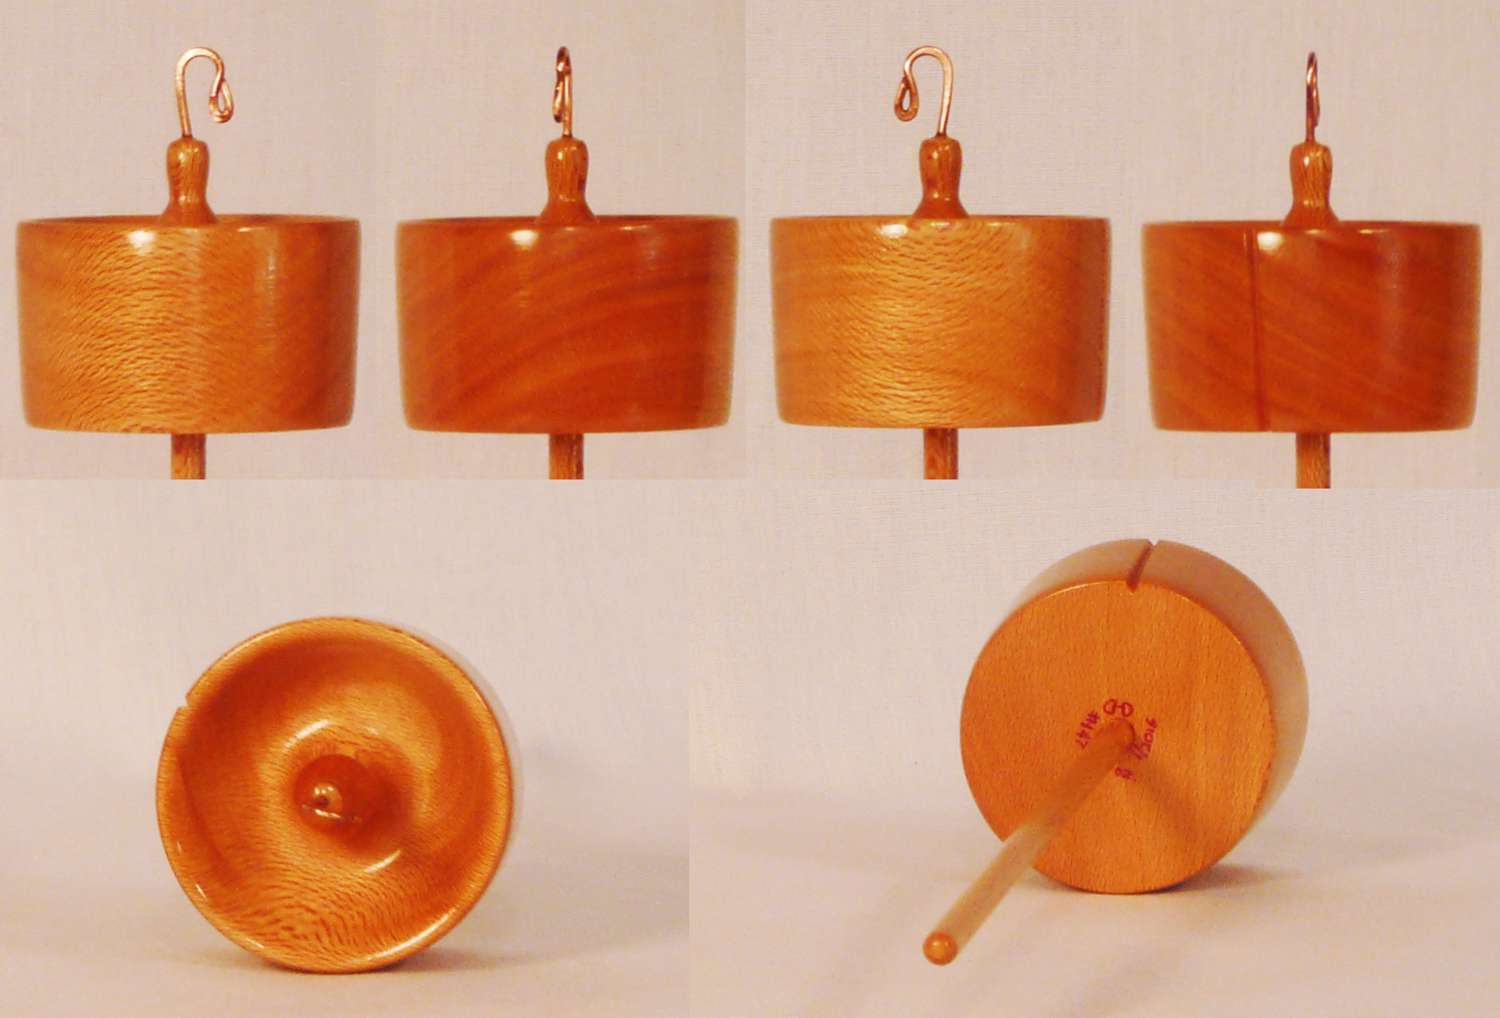 Top whorl drop spindle hand turned from Sycamore by Cynthia D. Haney Signed number 147 weight 1 oz.